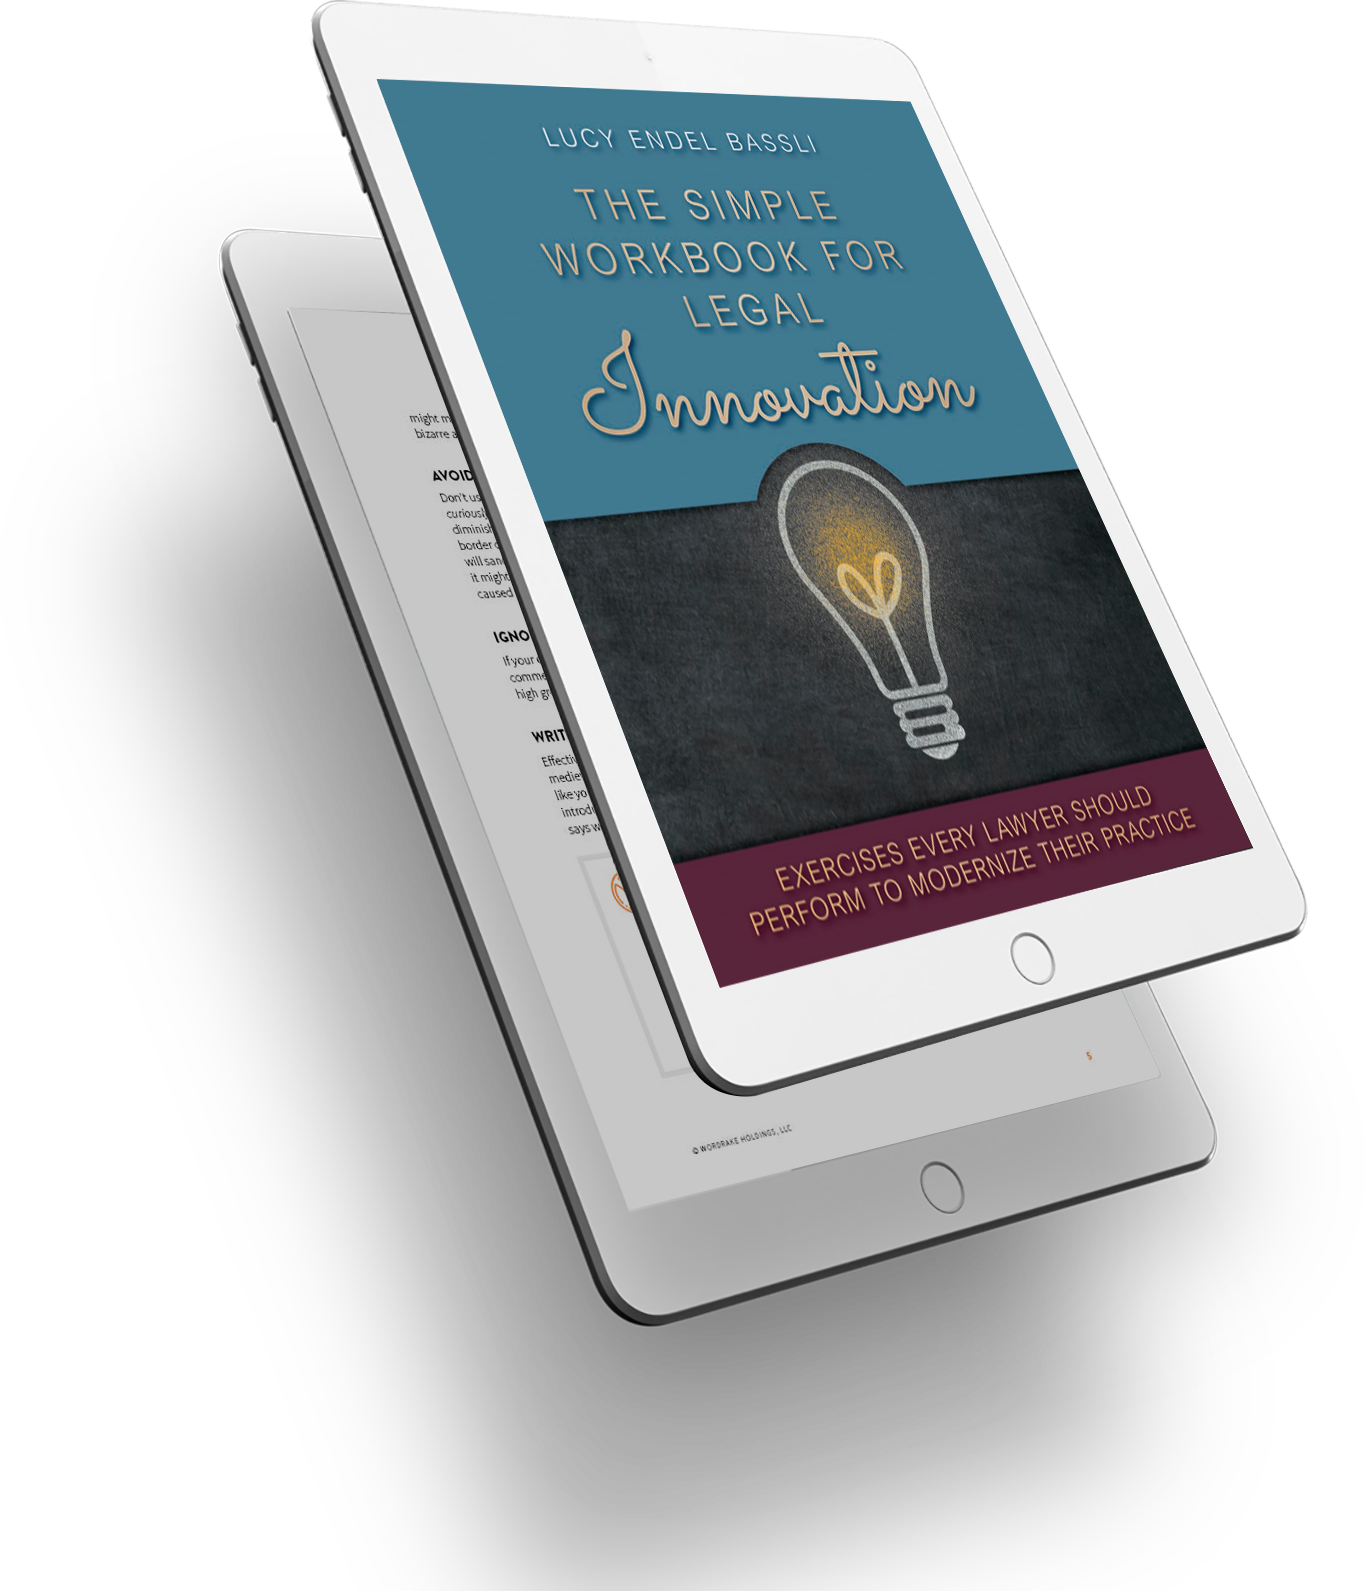 The Simple Workbook for Legal Innovation